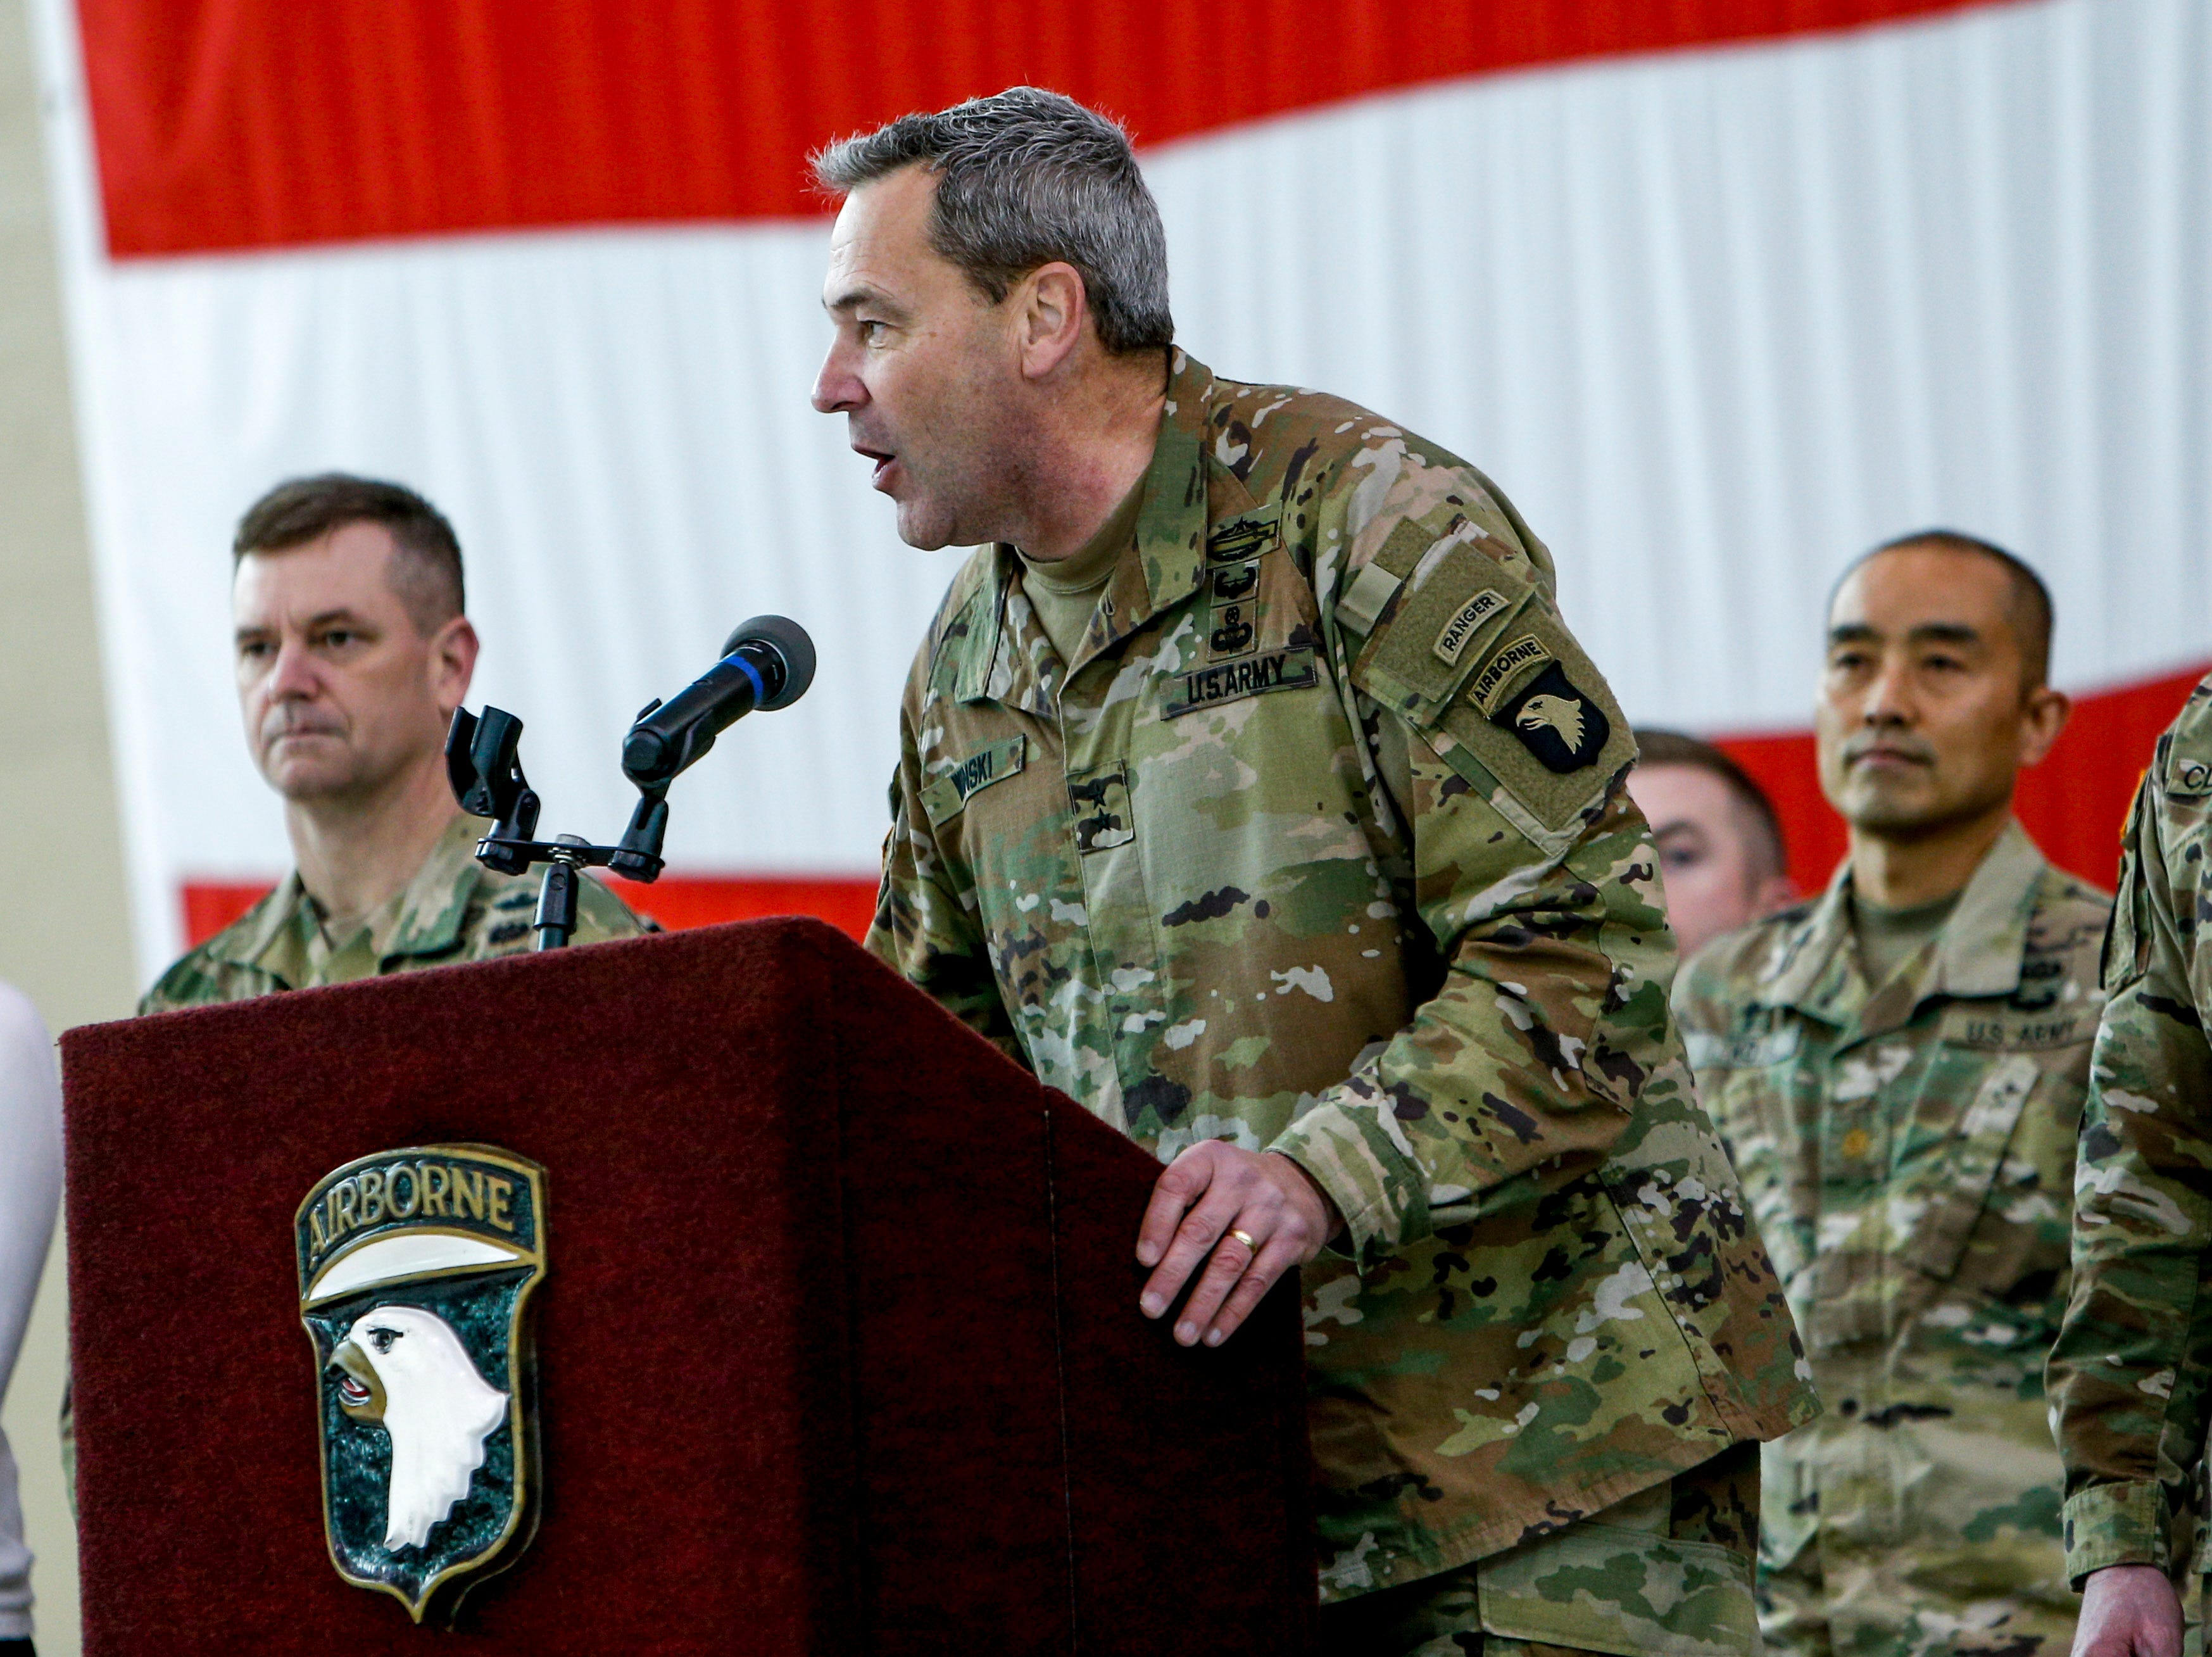 Commangin General MG Brian Winski welcomes troops back to Fort Campbell before dismissing them to see family during the return of soldiers from the 101st Combat Aviation Brigade of 101st Airborne Division (Air Assault) at Campbell Army Air Field in Fort Campbell, KY., on Sunday, March 10, 2019.